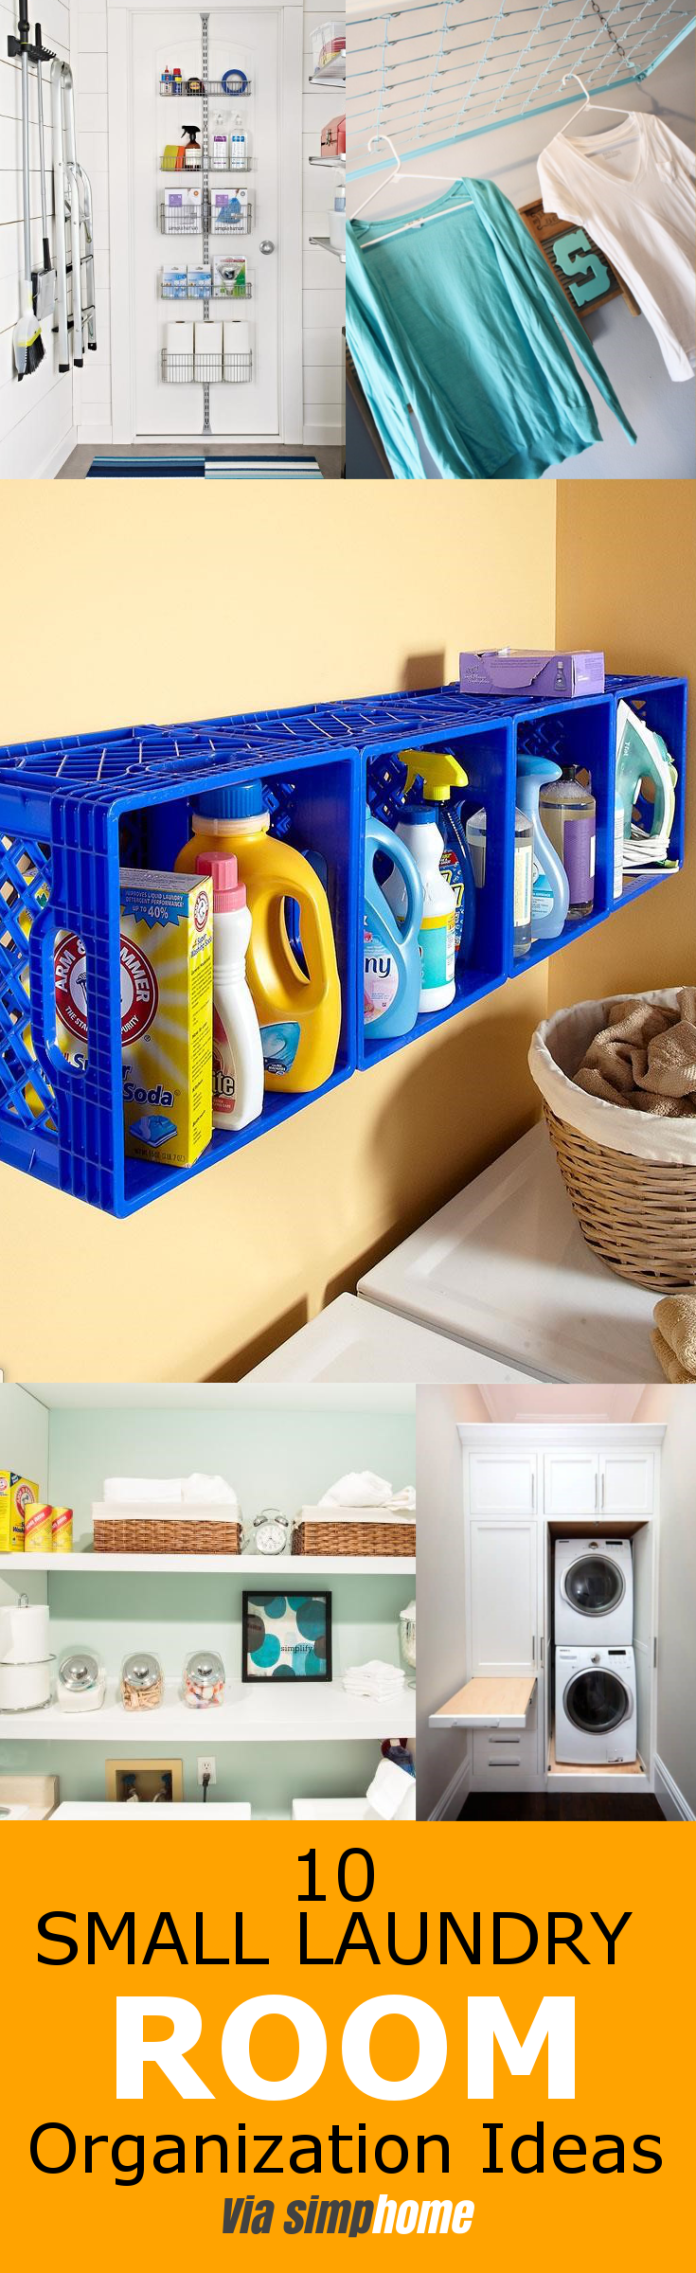 10 Small Laundry Room Organization Ideas via simphome featured pinterest 1